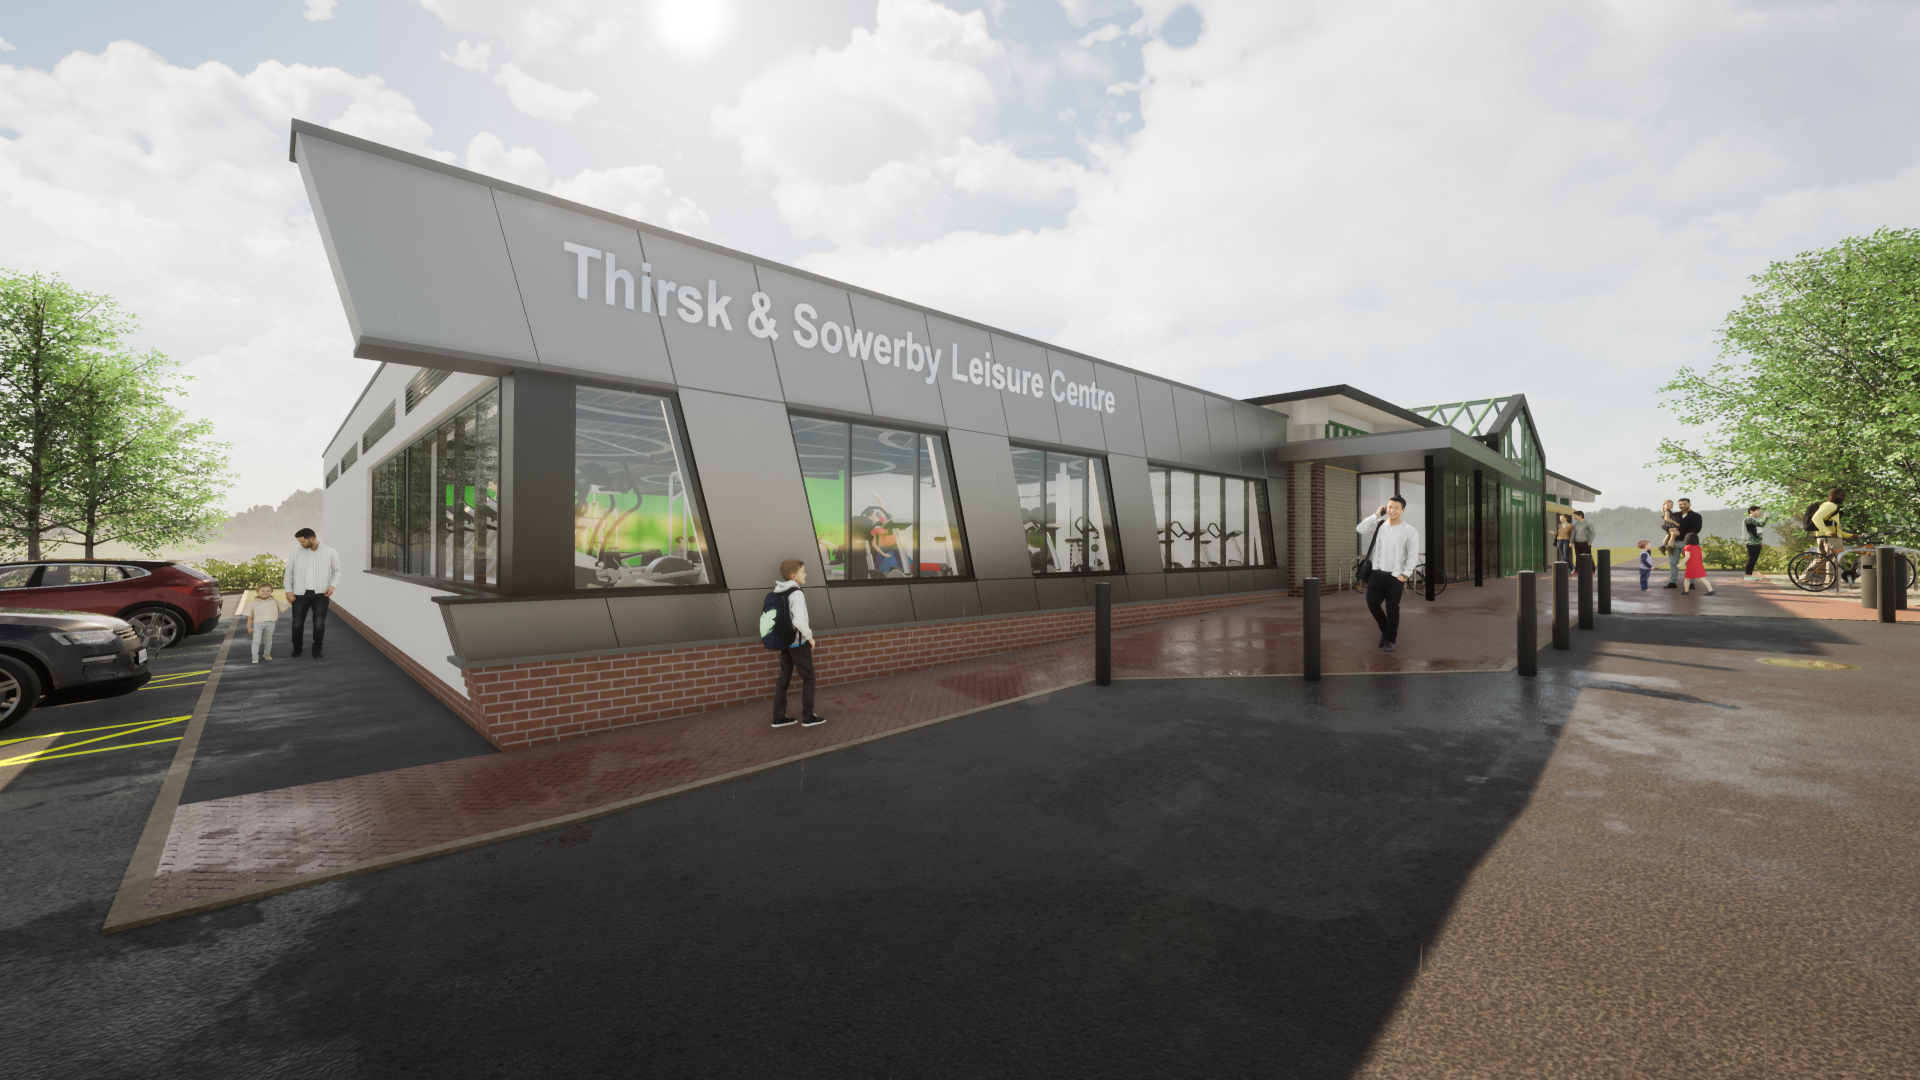 Thirsk sowerby leisure centre facelift concept